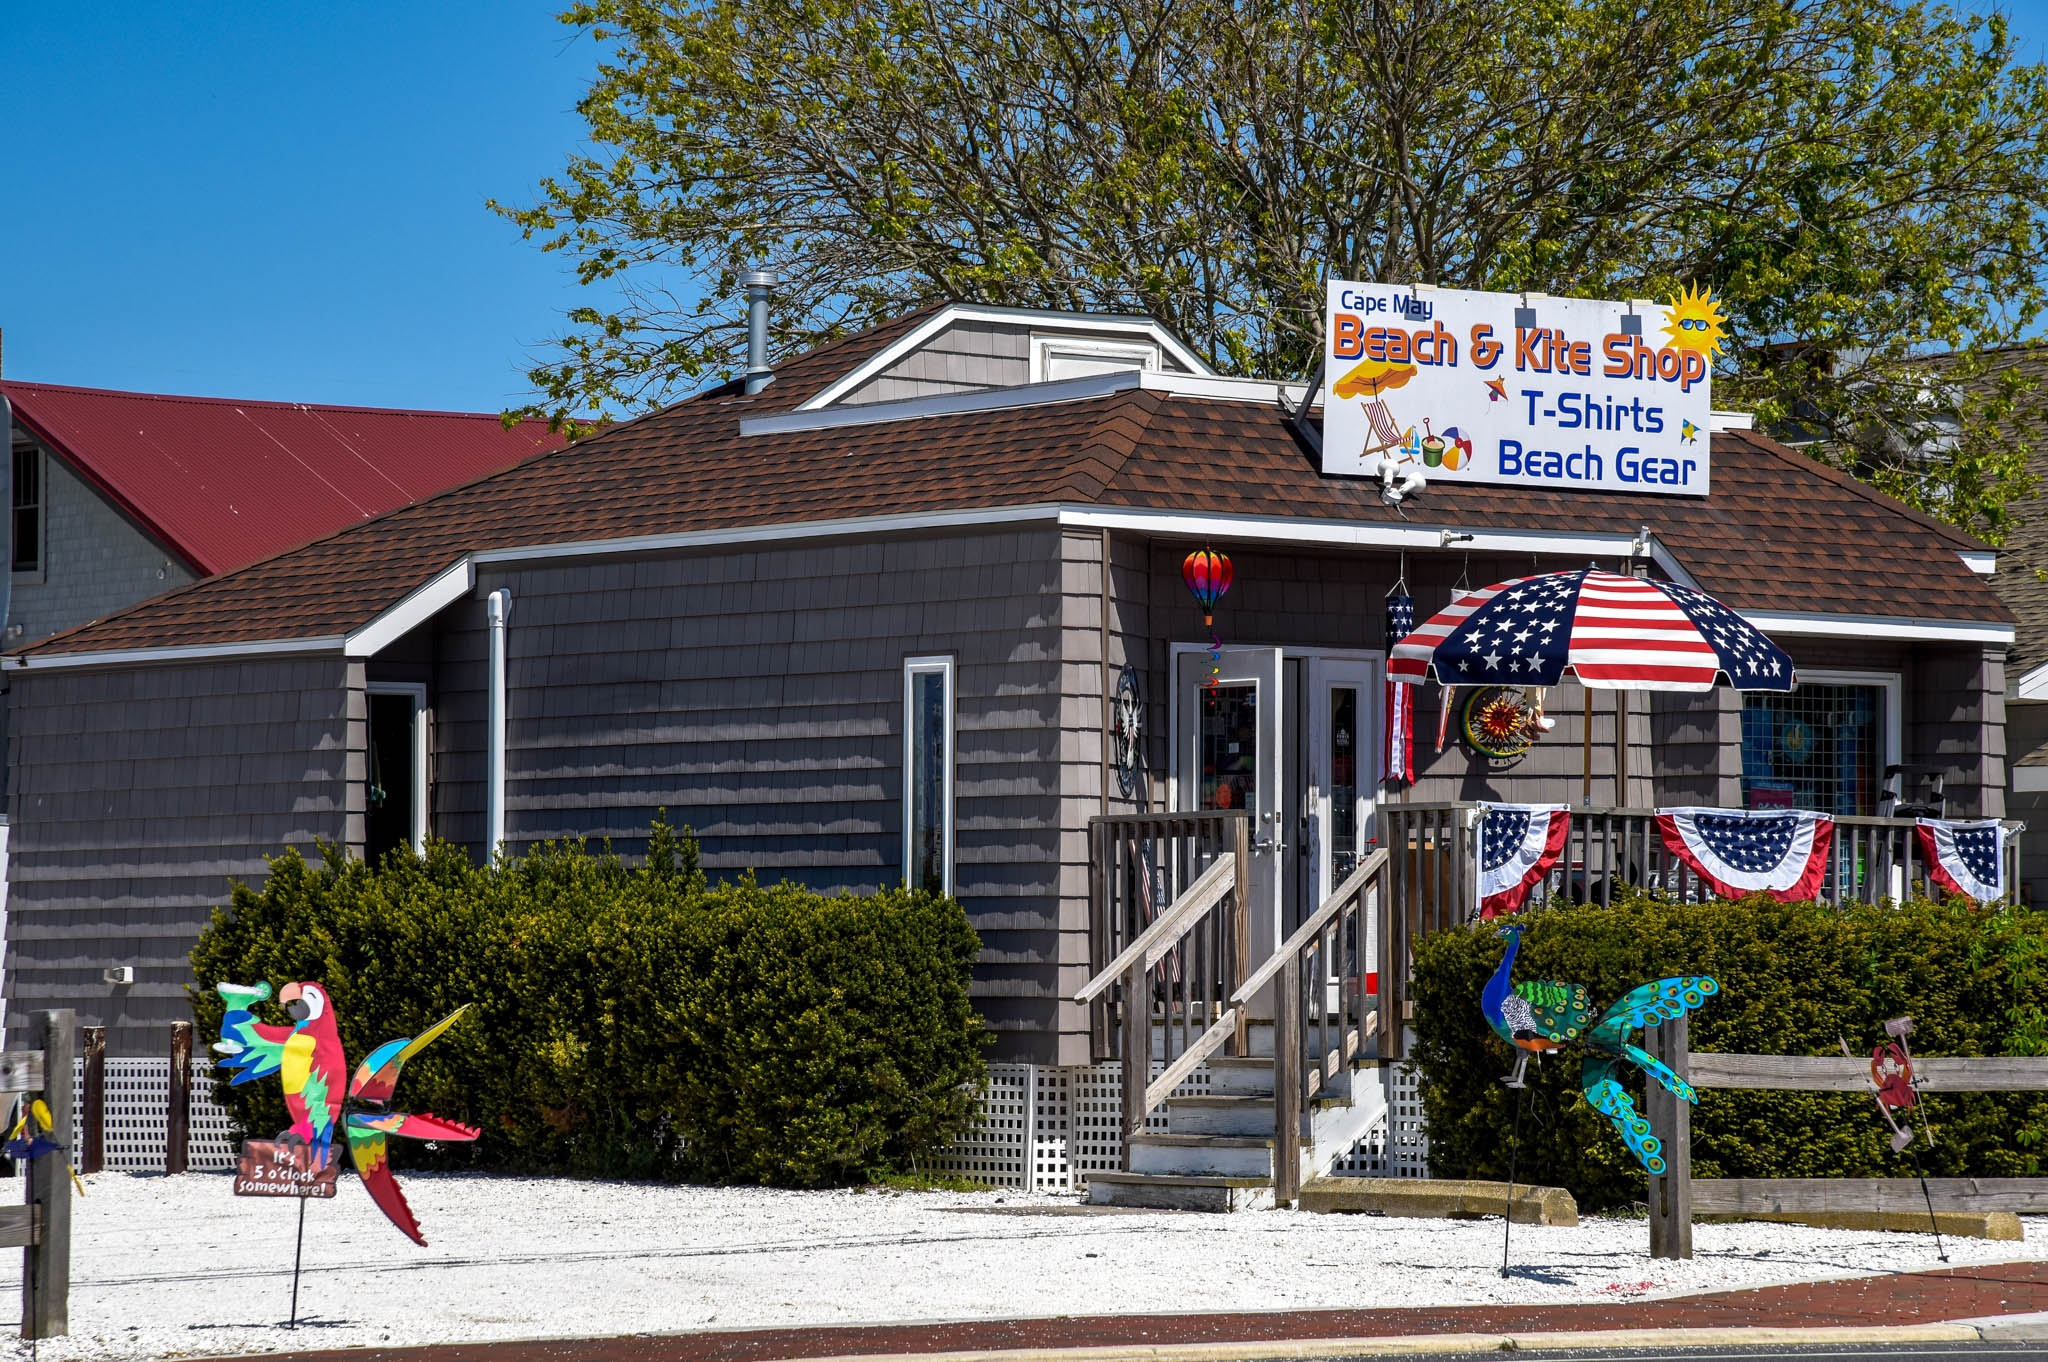 A store for  Finding Beach Gear just past the Lobster House come over the bridge.